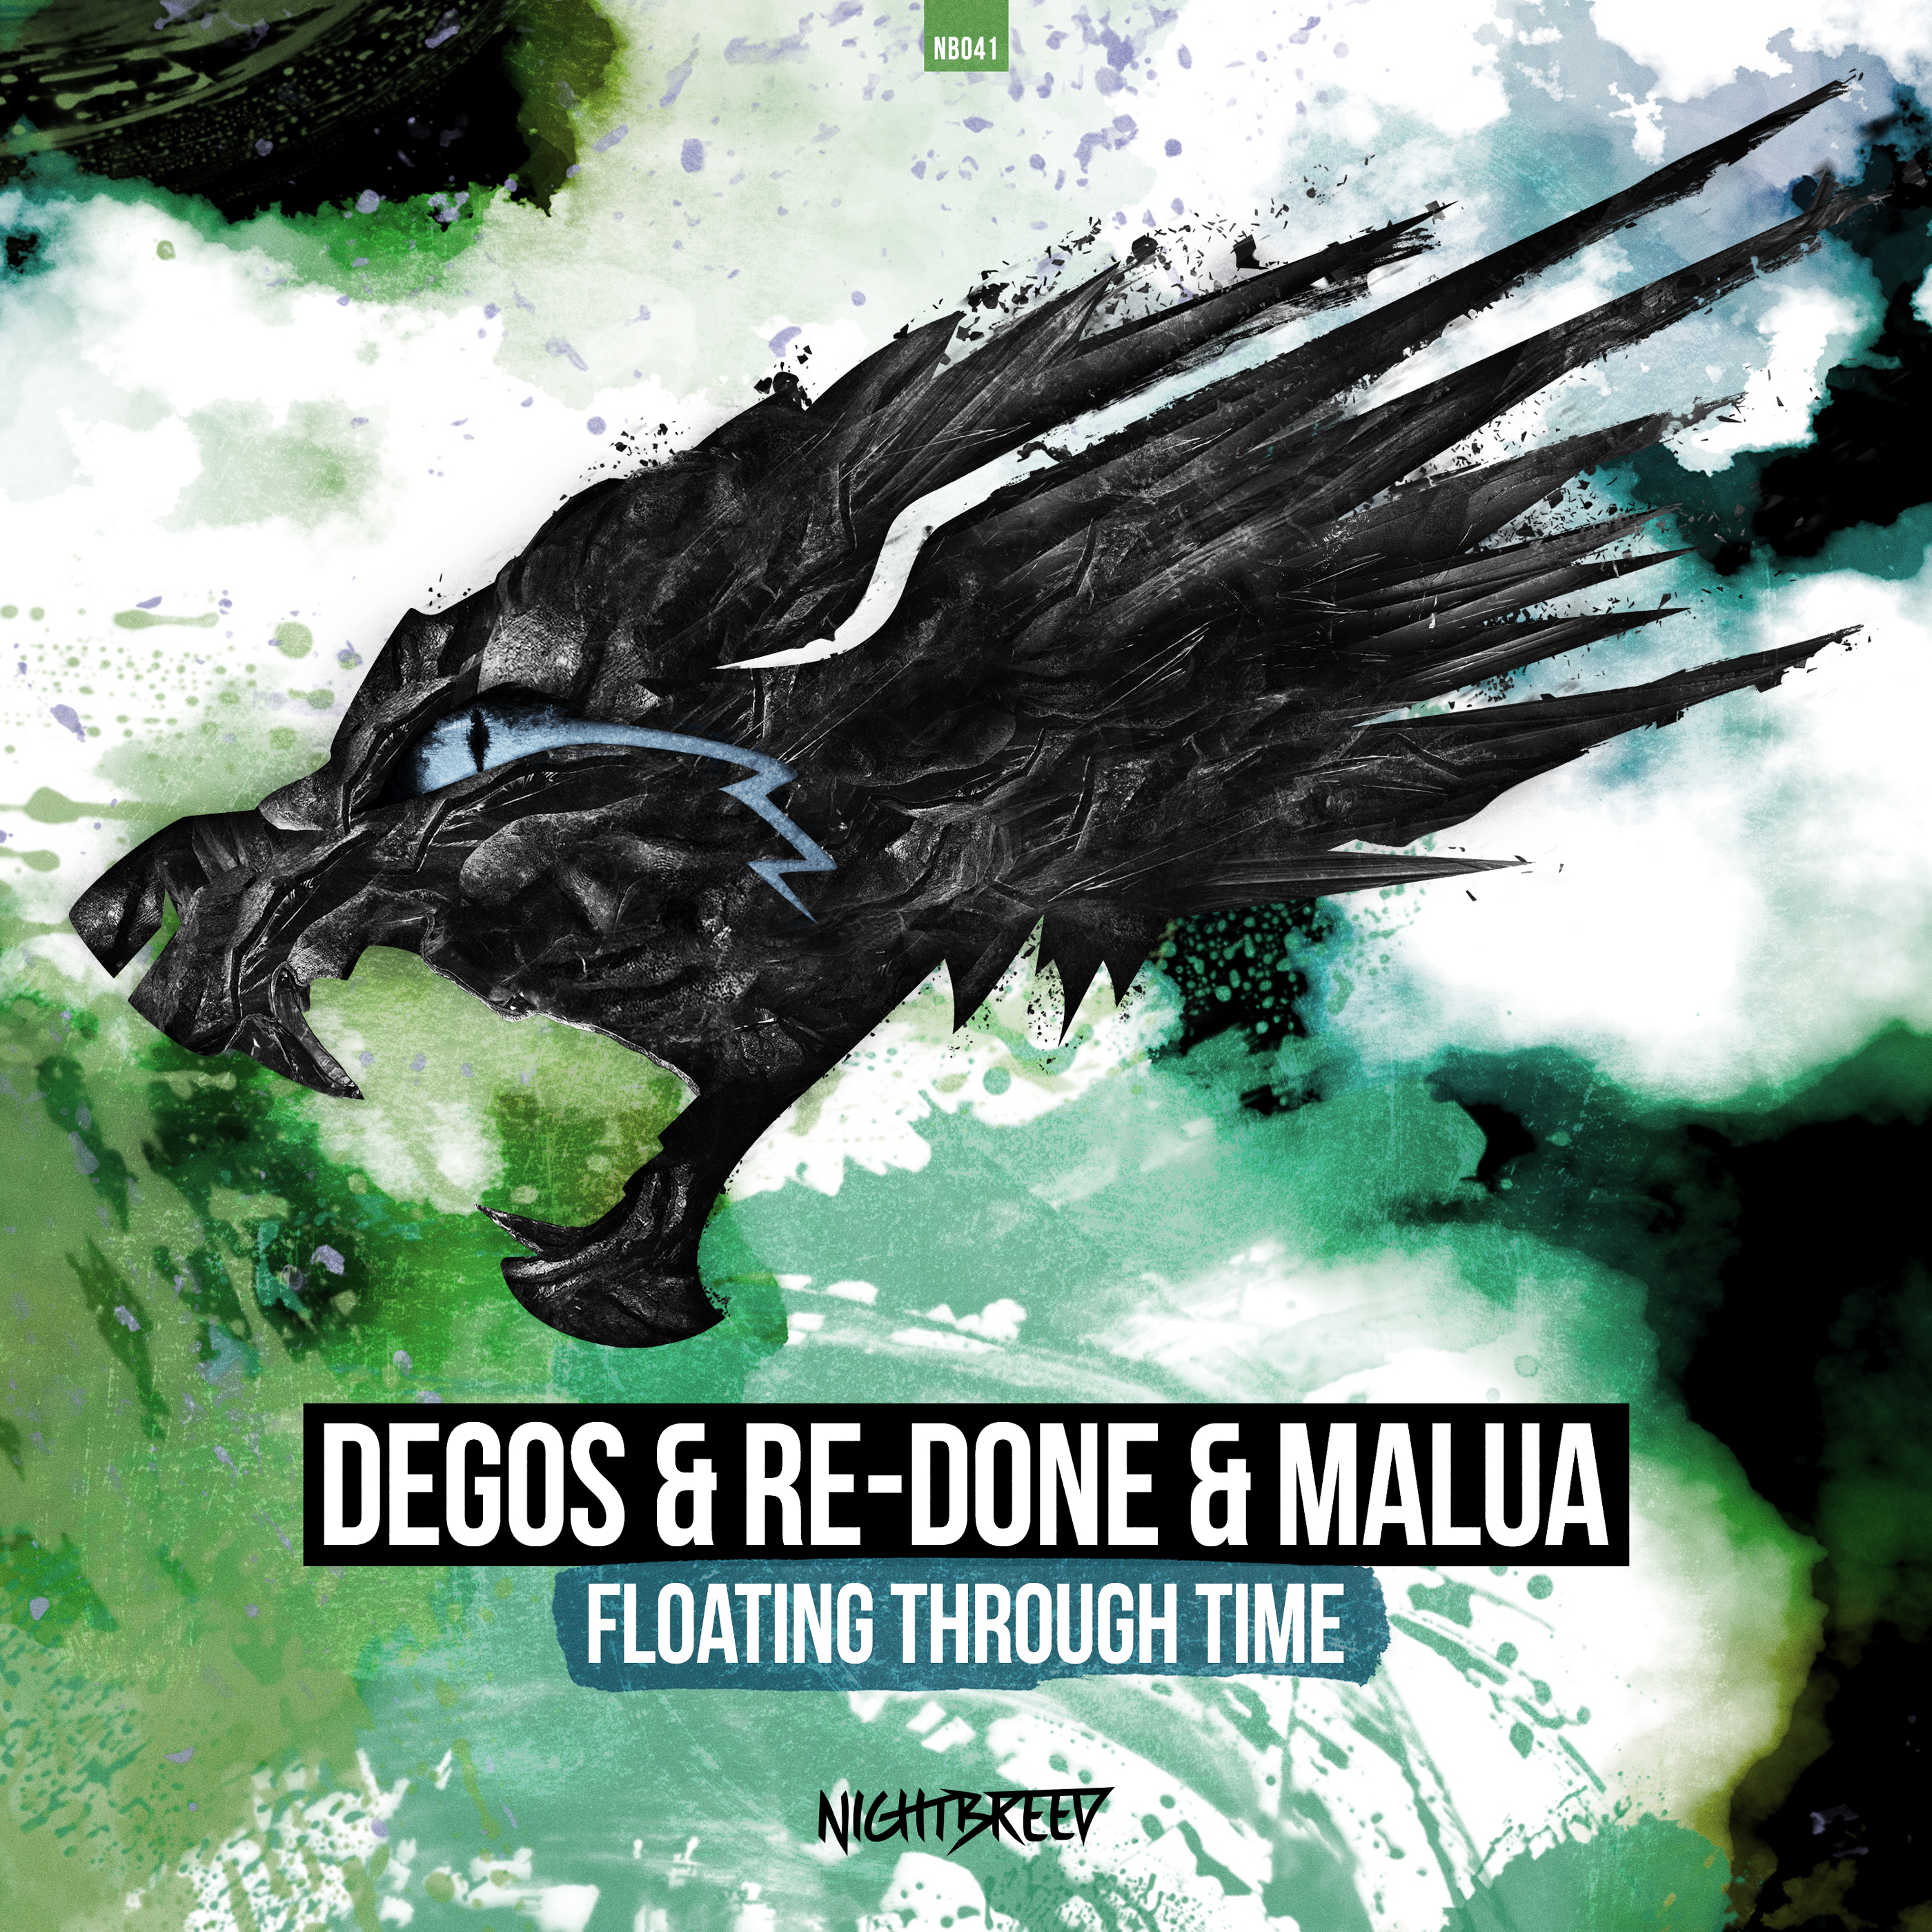 Degos & Re-Done & Malua - Floating Through Time [NIGHTBREED RECORDS] NB041